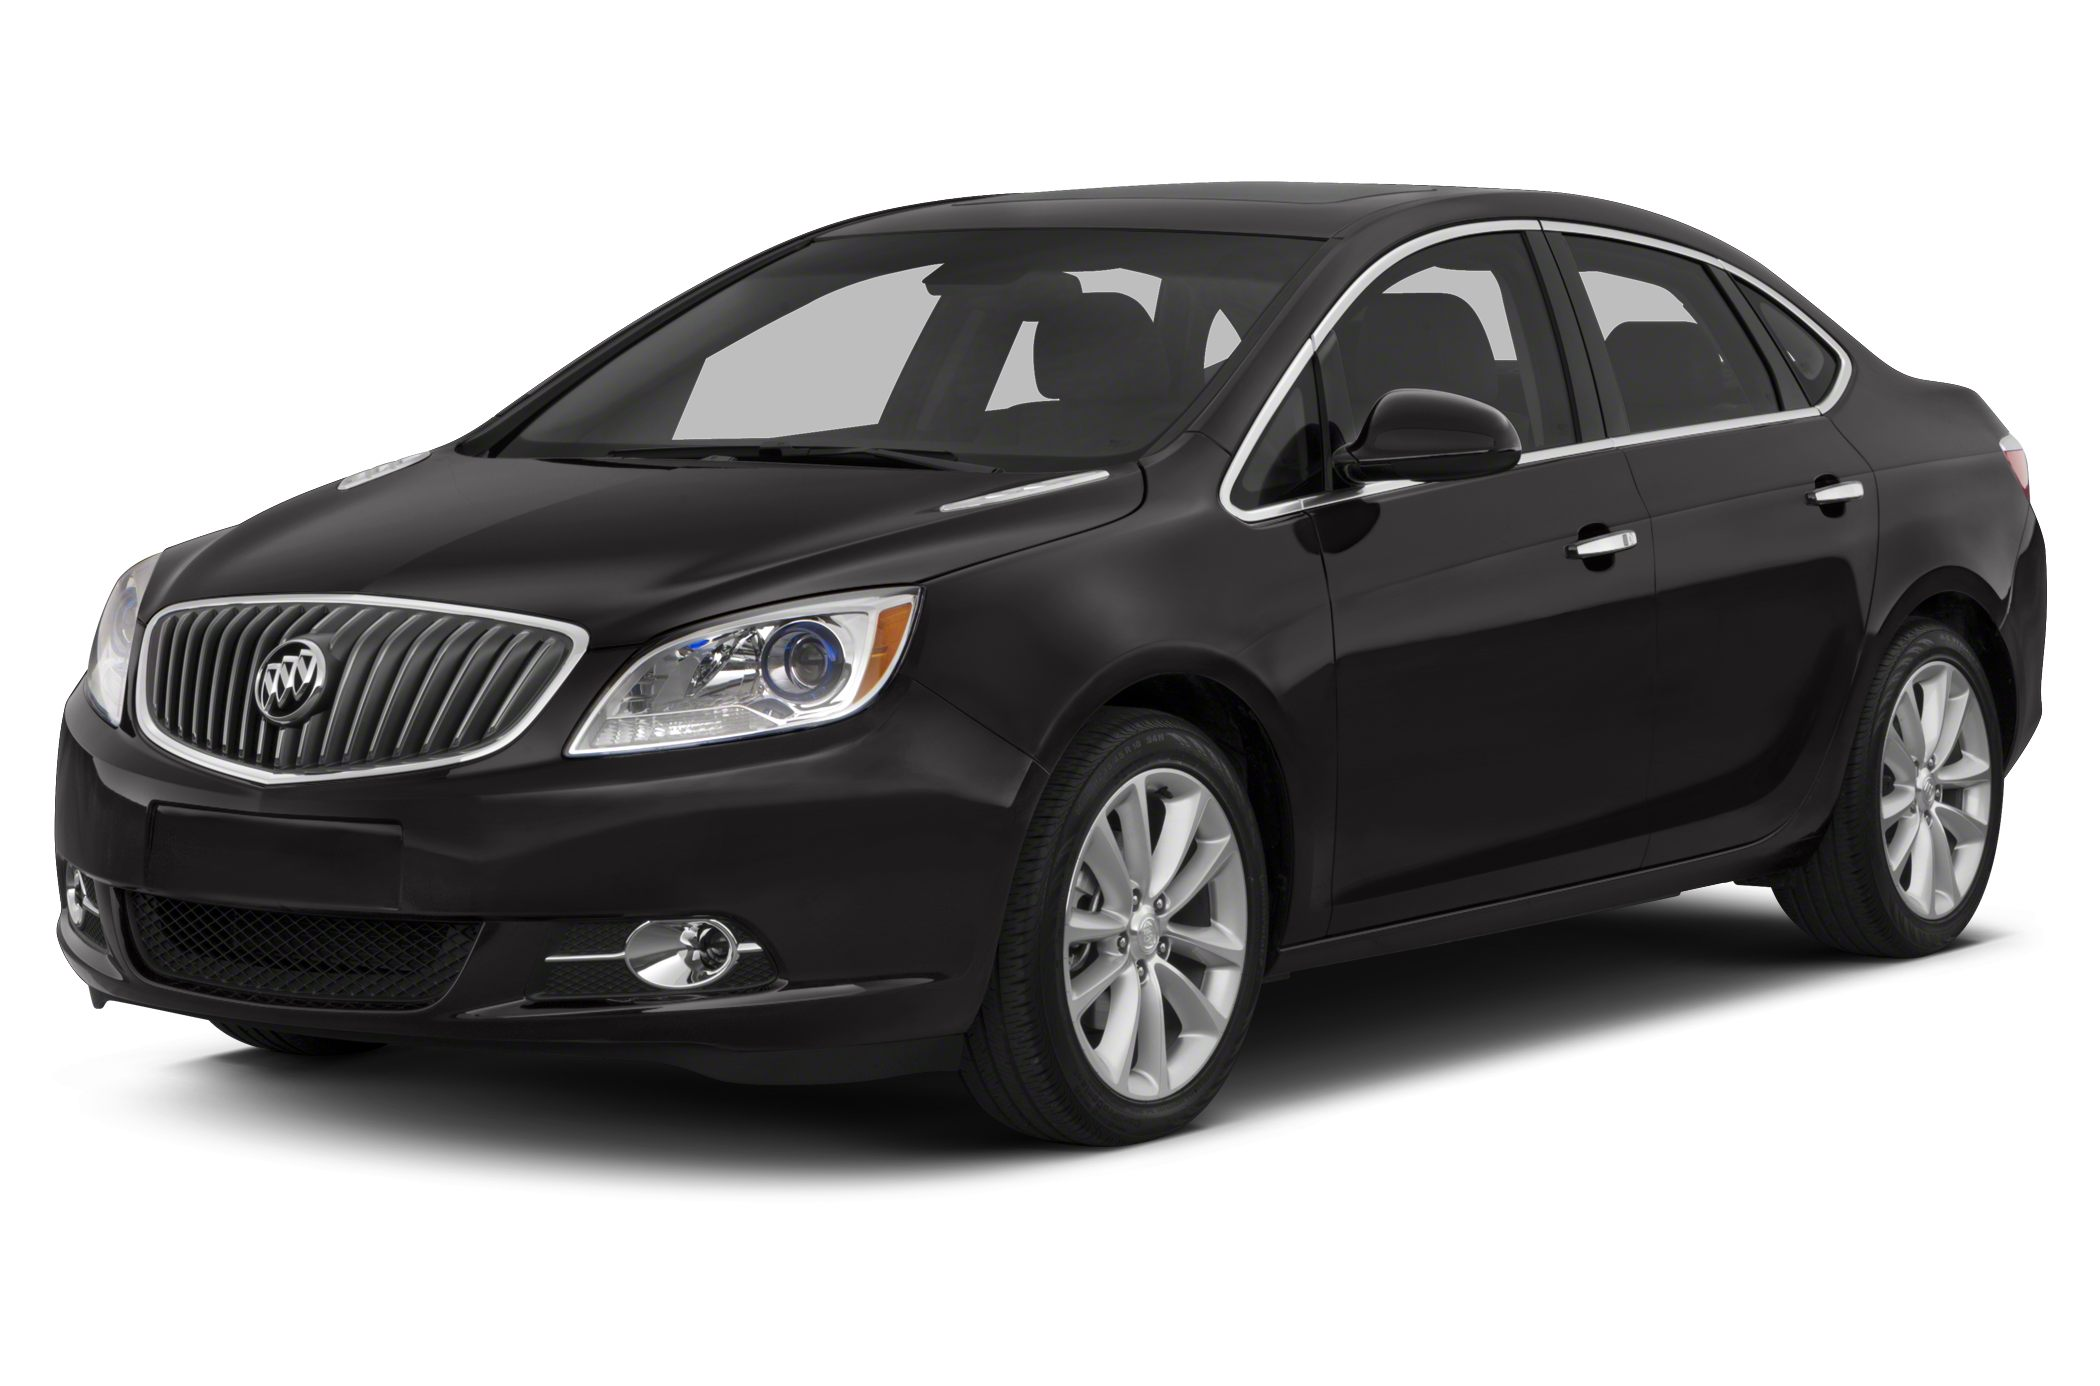 2013 Buick Verano Premium Sedan for sale in Boerne for $32,690 with 0 miles.